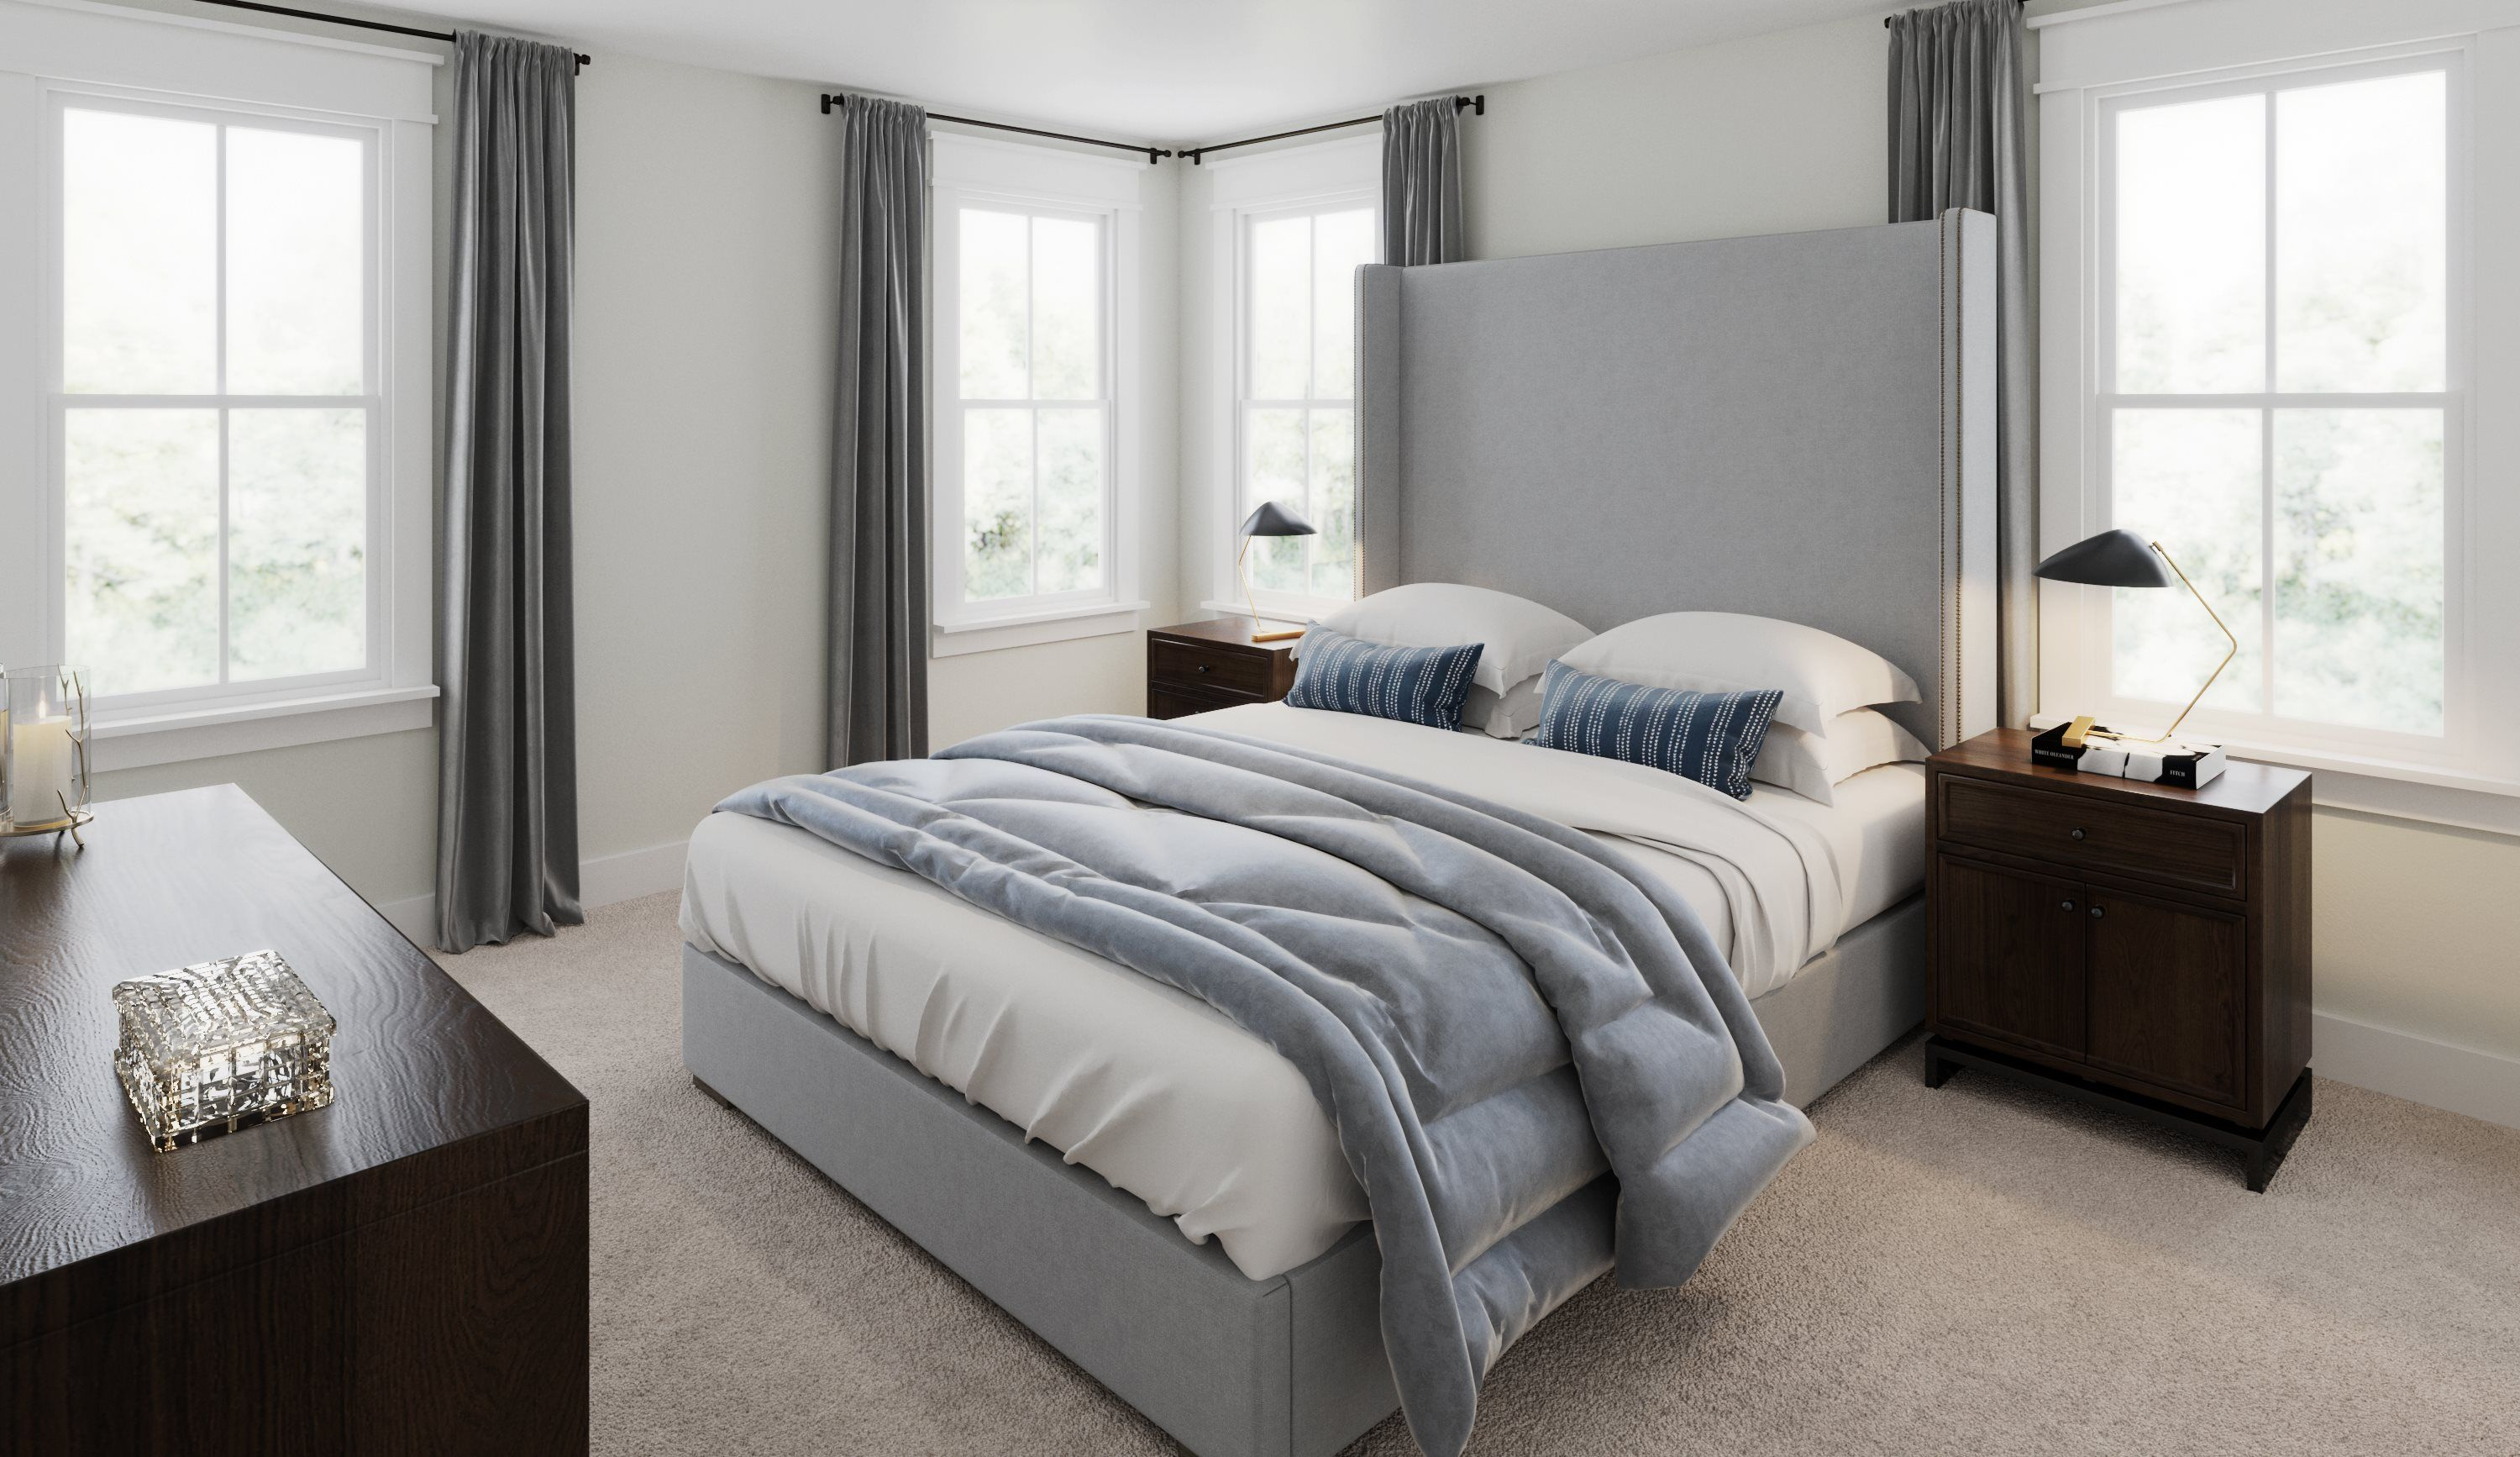 Bedroom featured in the ANSON By Lennar in Charleston, SC